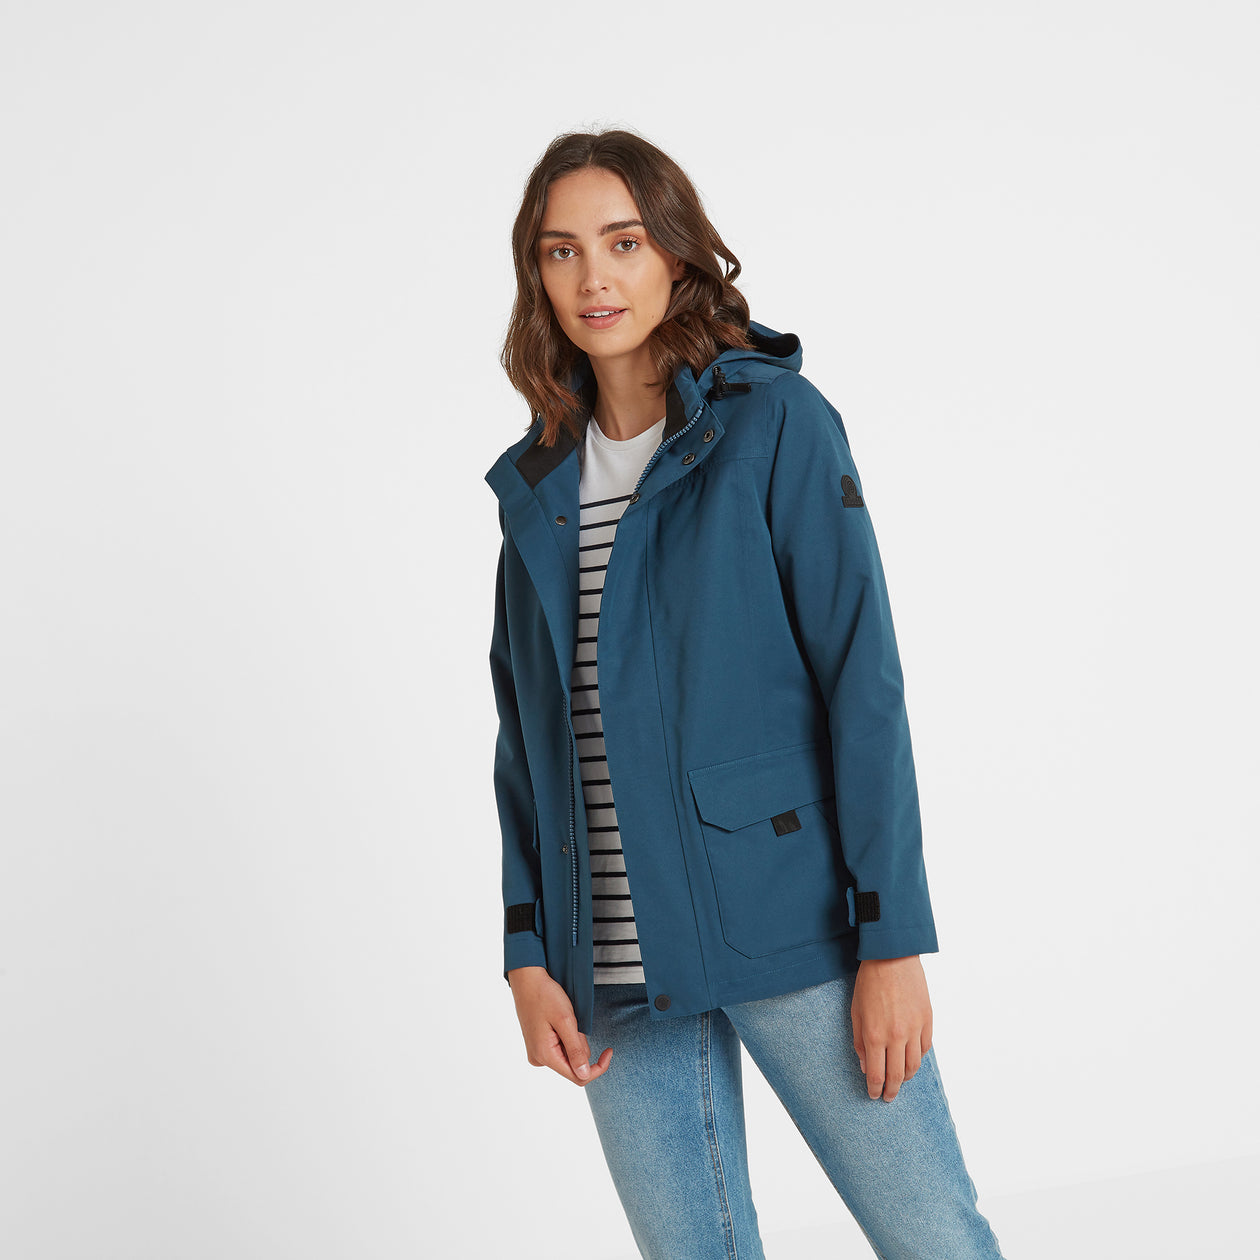 Beamsley Womens Waterproof Jacket - Atlantic Blue image 4